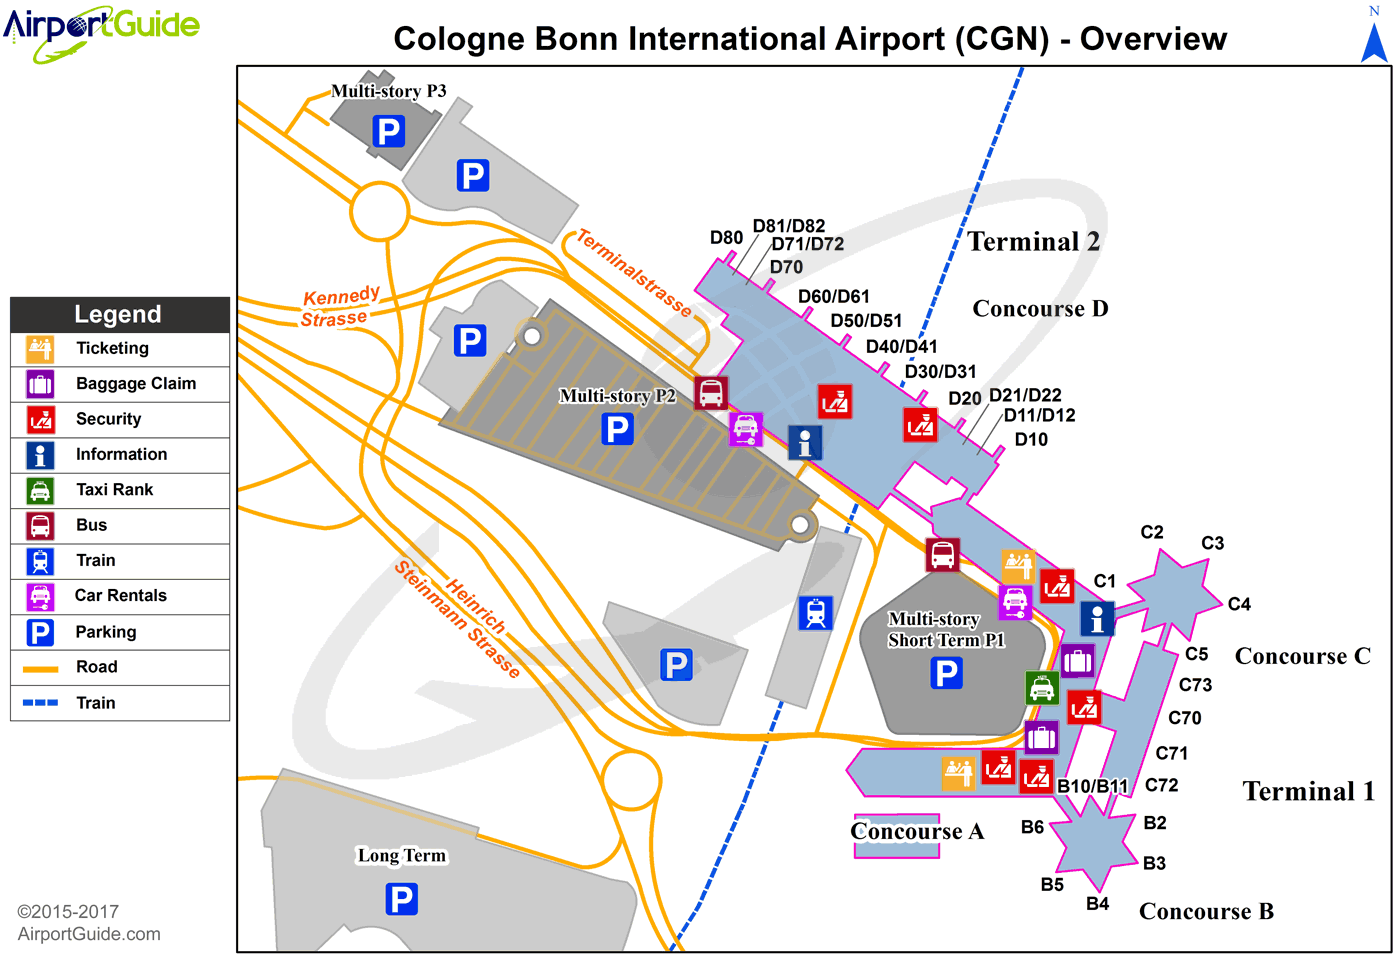 Cologne - Cologne Bonn (CGN) Airport Terminal Map - Overview